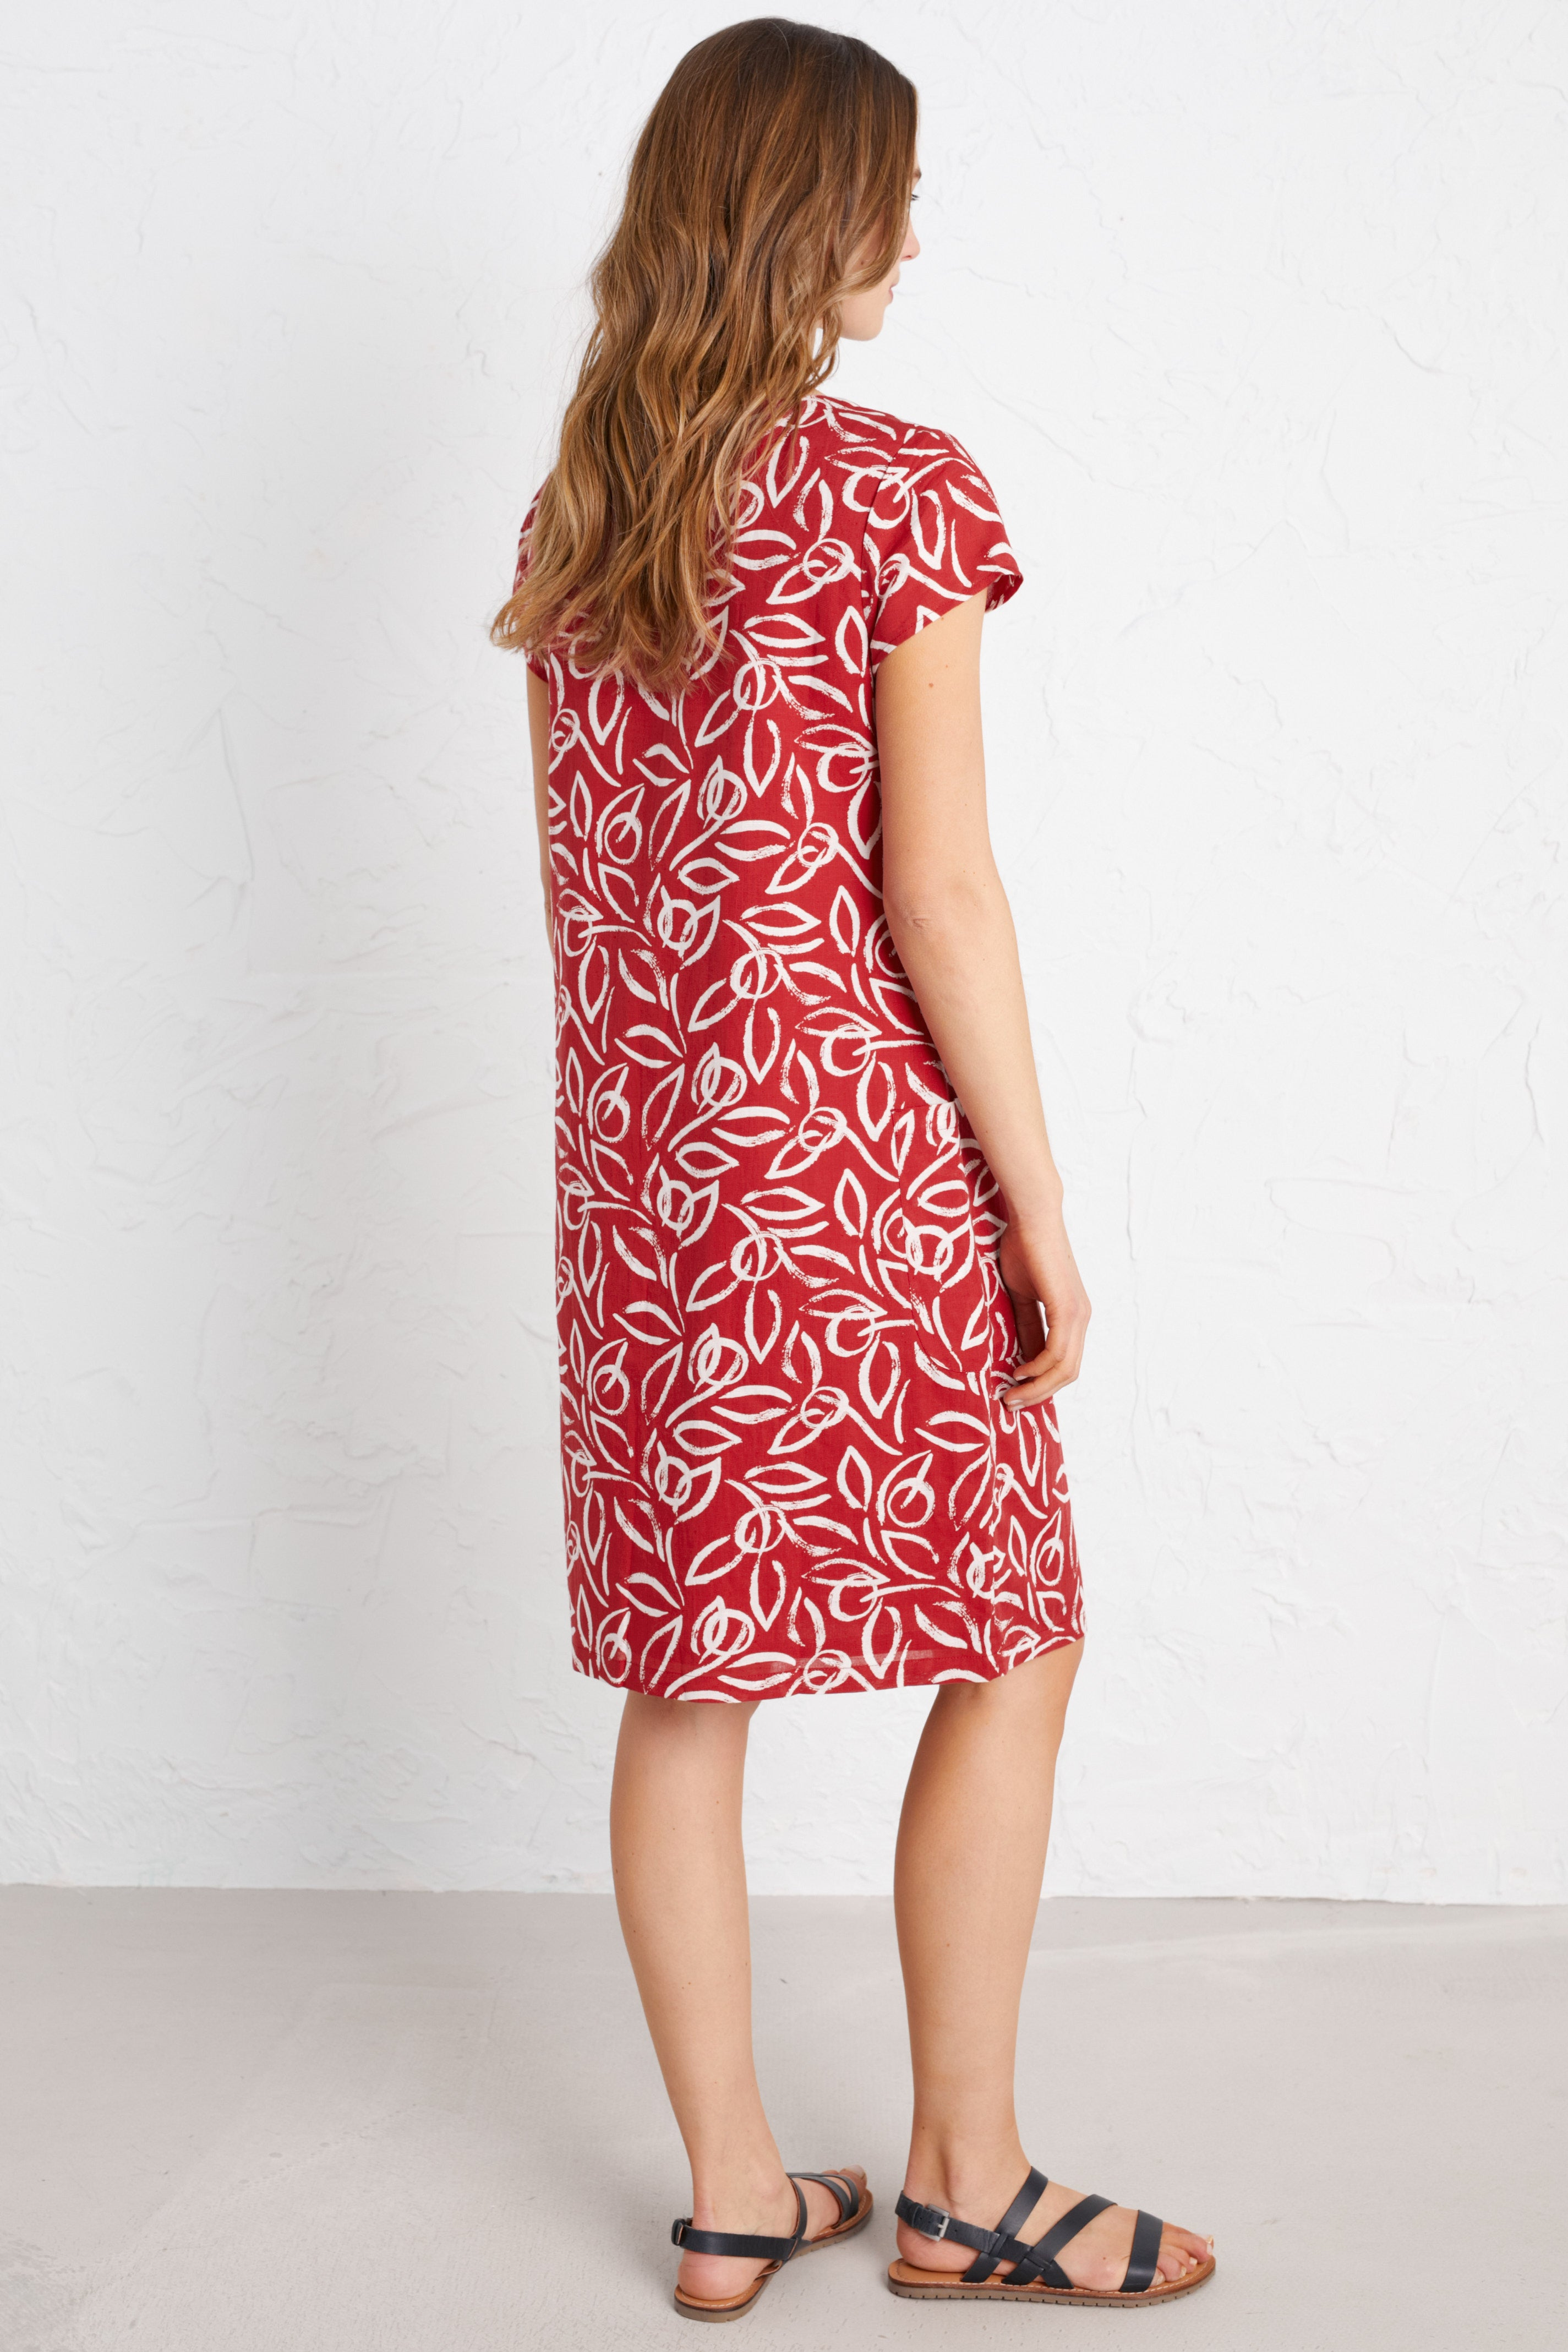 Seasalt River Cove Dress for Ladies in Painterly Leaf Rudder